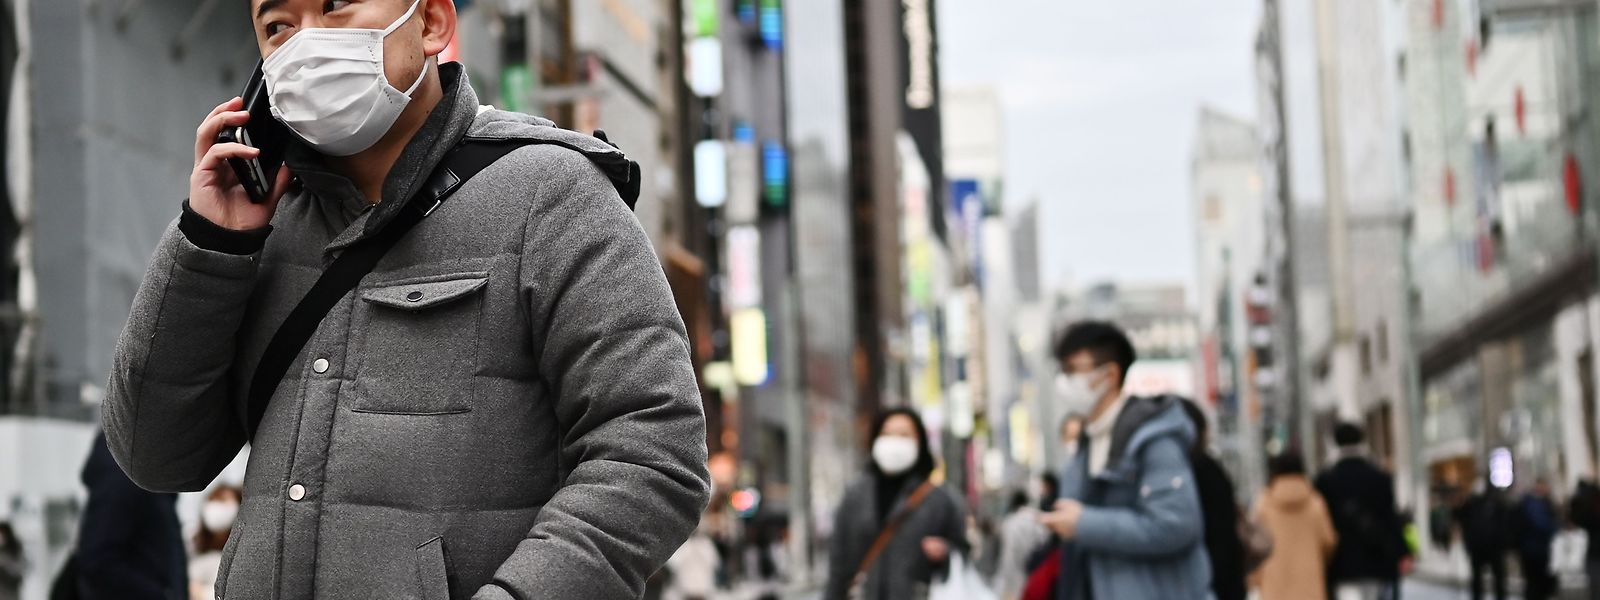 Pedestrians wearing protective masks to help stop the spread of a deadly virus which began in the Chinese city of Wuhan, walk on a street in Tokyo's Ginza area on January 25, 2020. - Japan's health authorities on January 25 confirmed the country's third case of the coronavirus which emerged in the Chinese city of Wuhan. (Photo by CHARLY TRIBALLEAU / AFP)